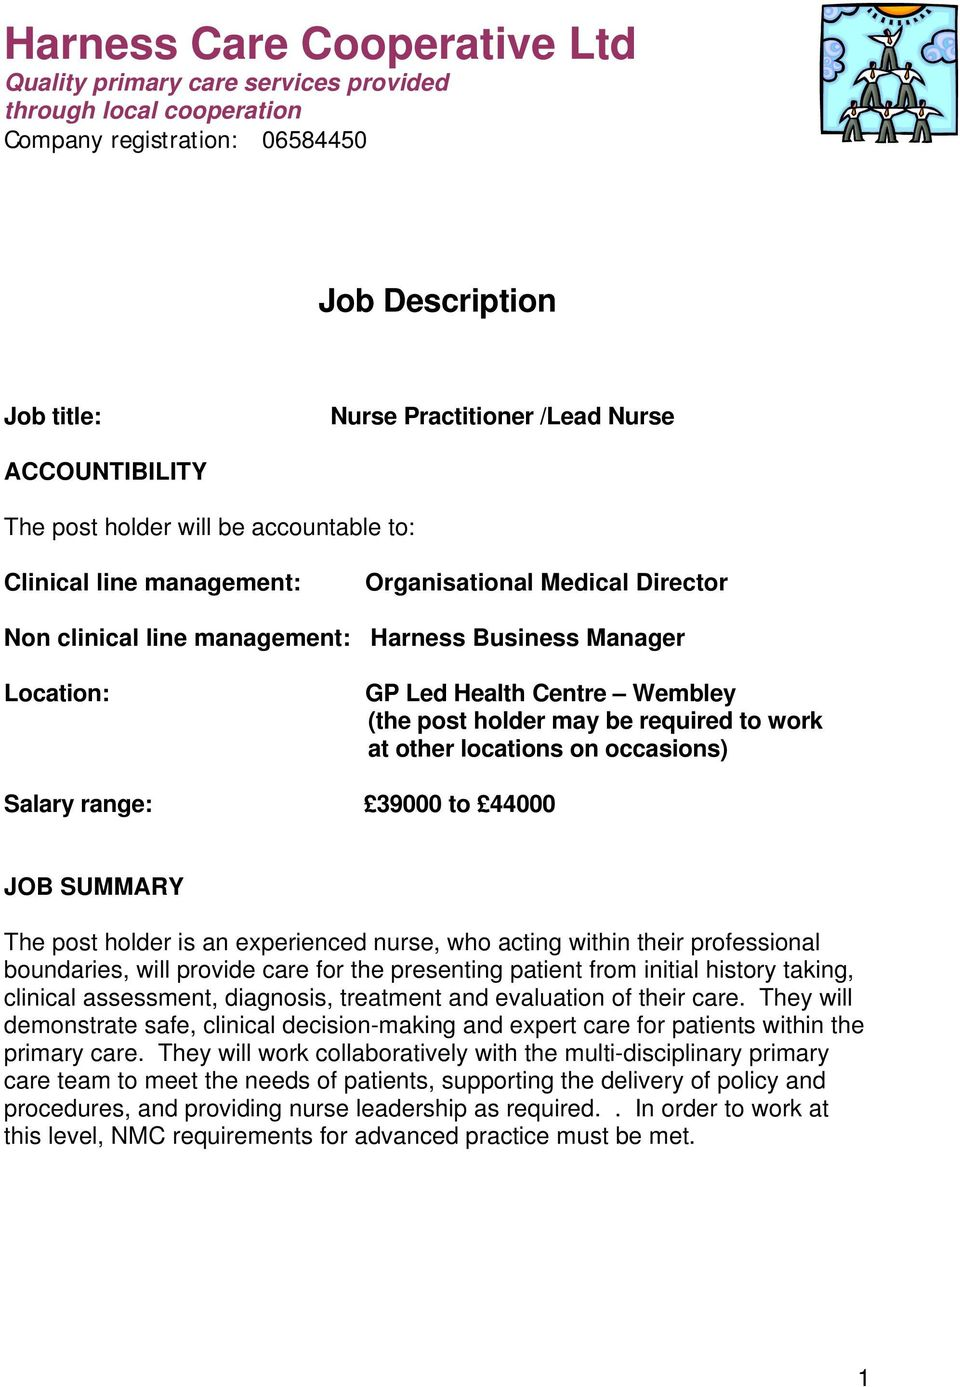 post holder may be required to work at other locations on occasions) Salary range: 39000 to 44000 JOB SUMMARY The post holder is an experienced nurse, who acting within their professional boundaries,